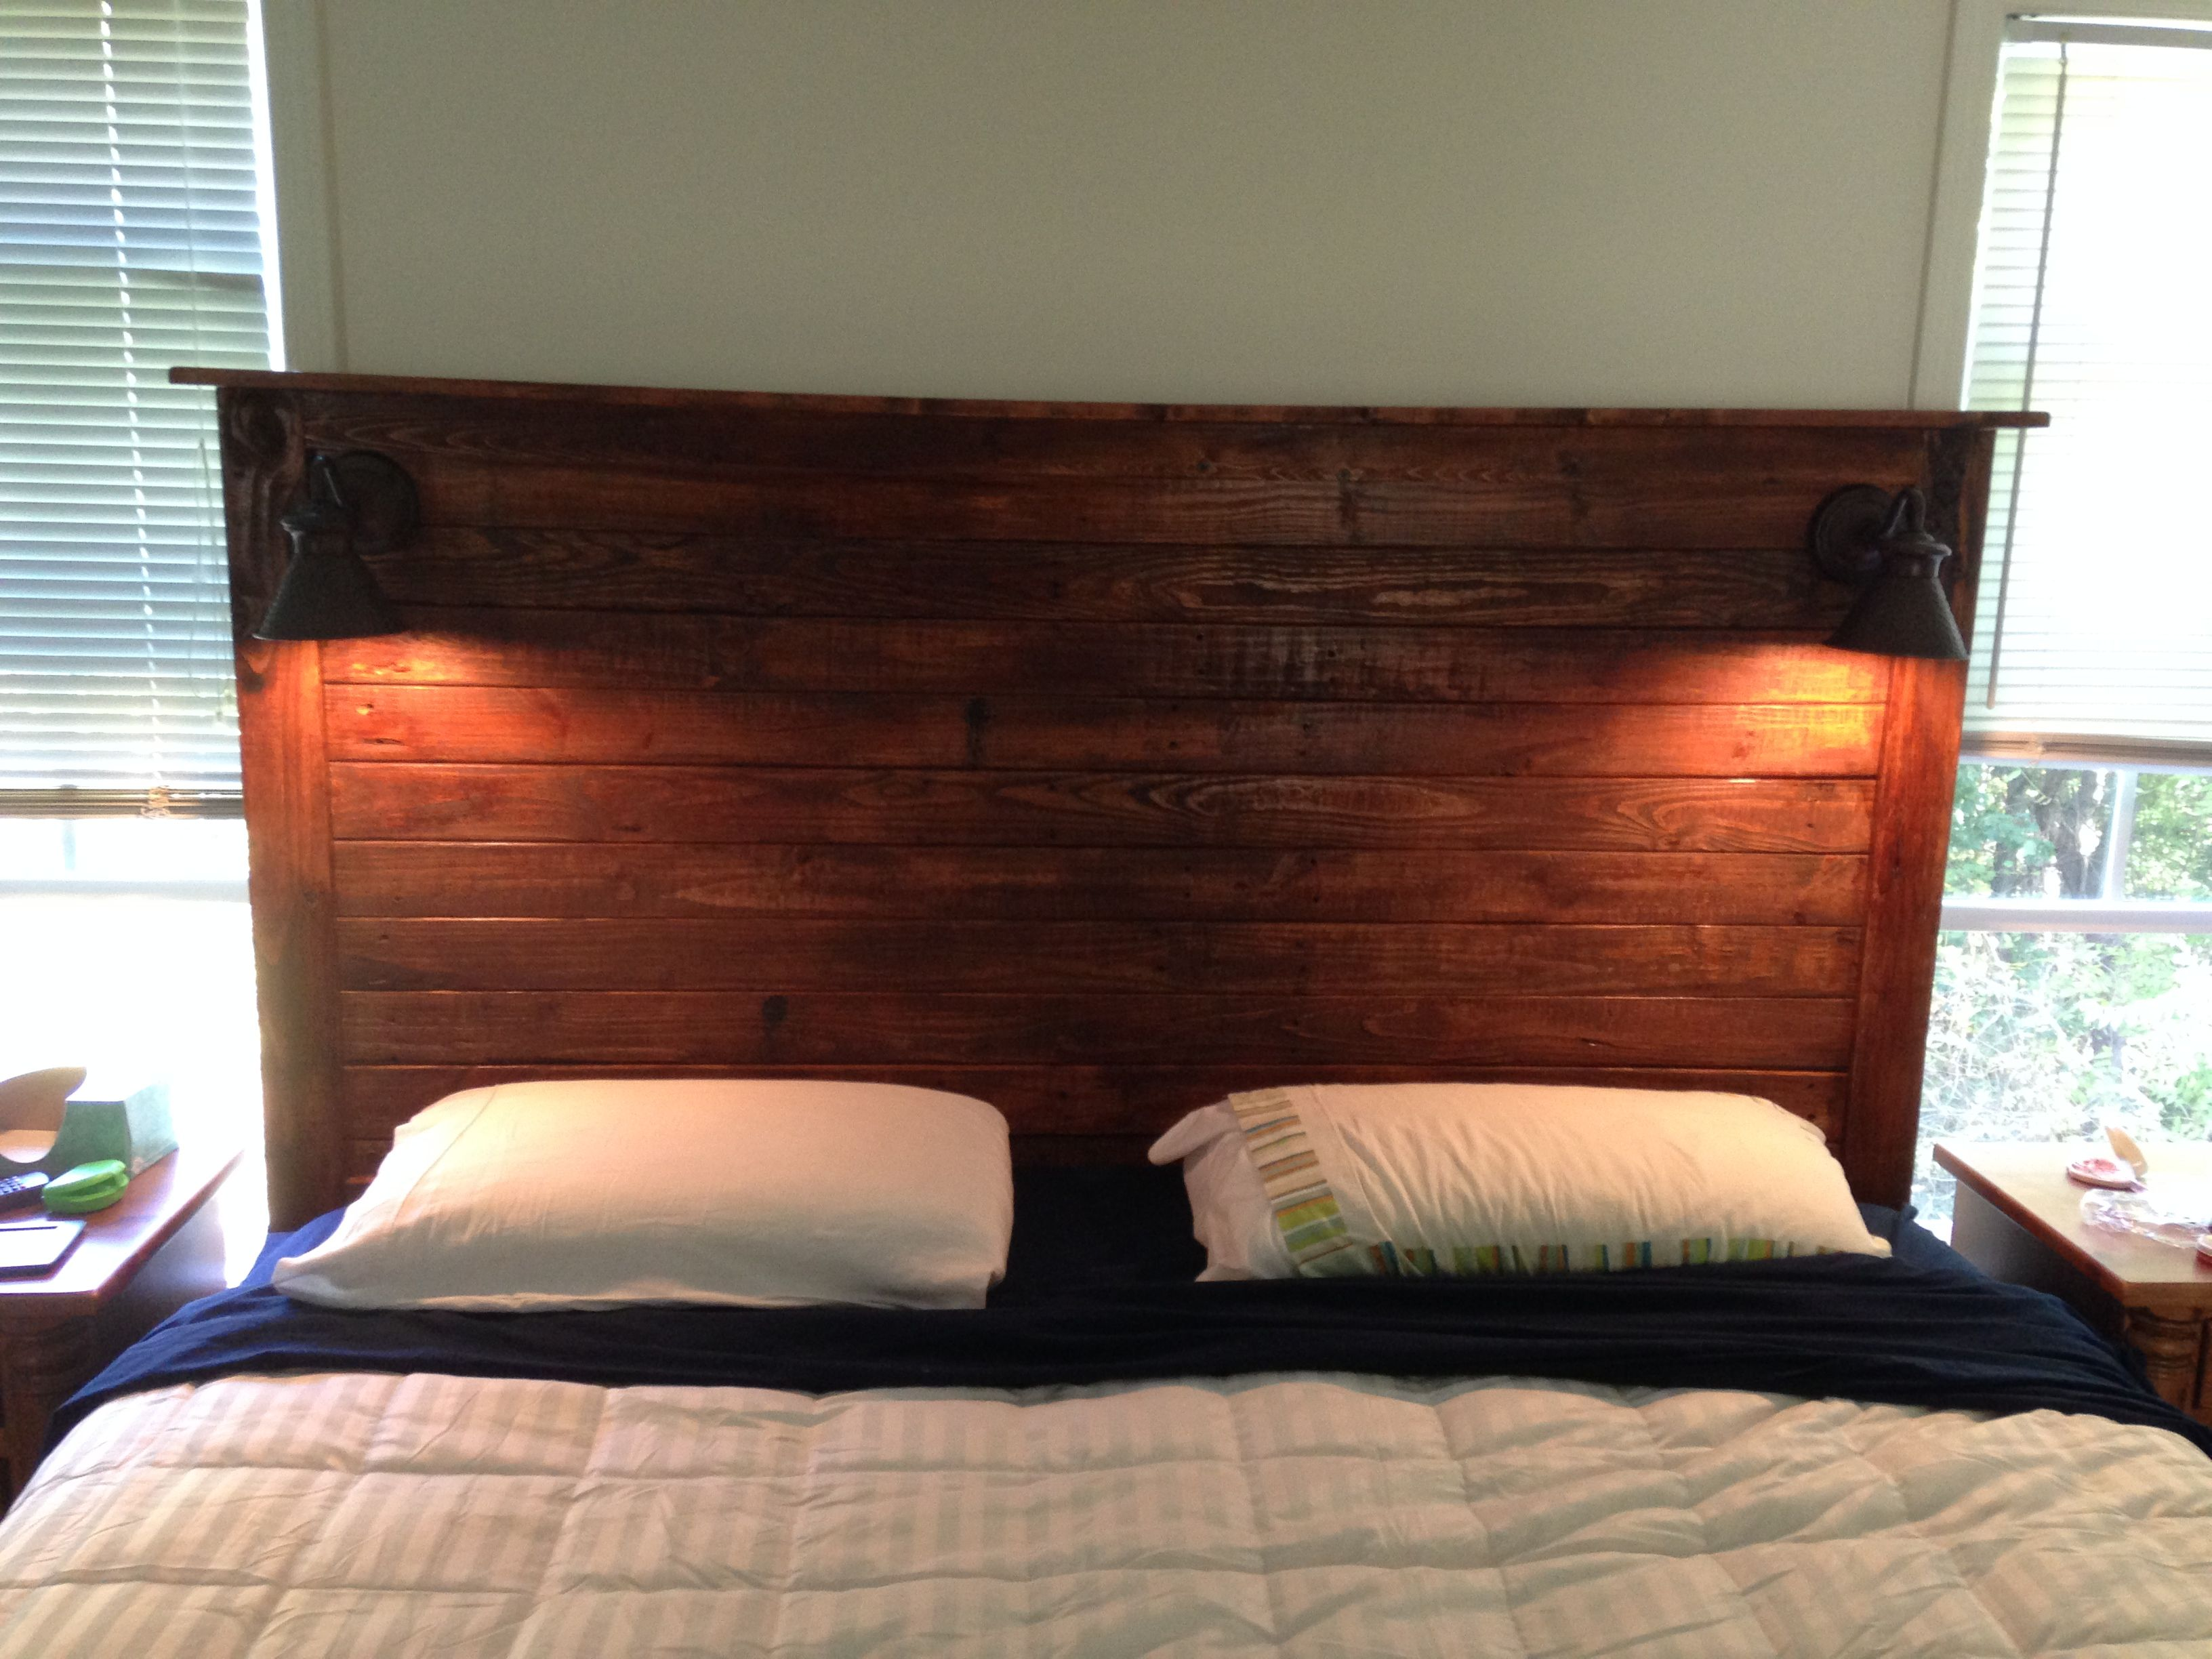 King Size Headboard Made From The Pallets That The Bed